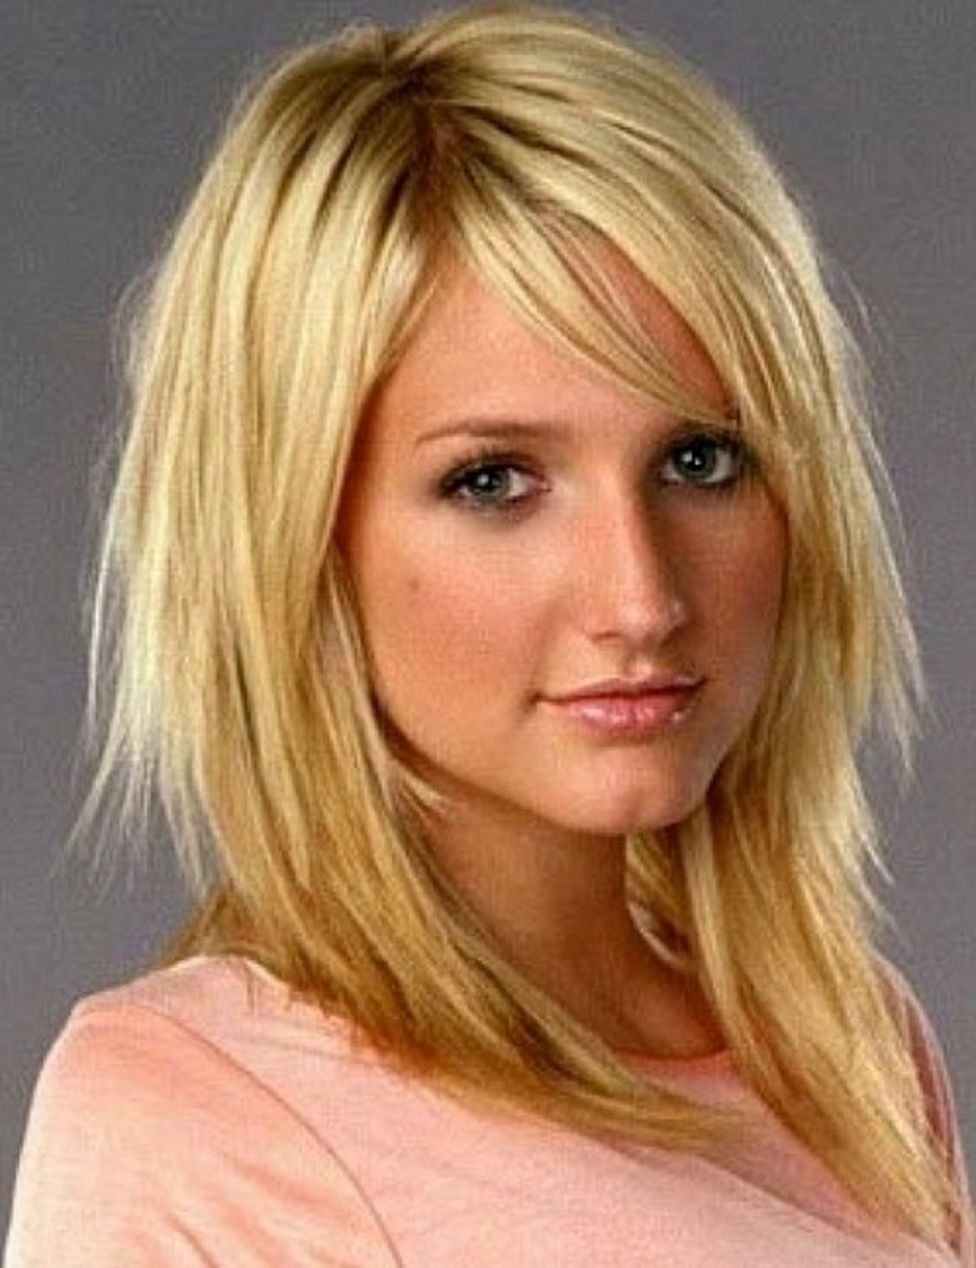 Haircuts For Thin Hair Square Face   Layered Hairstyles With Side with Haircuts For Thin Straight Hair With Bangs